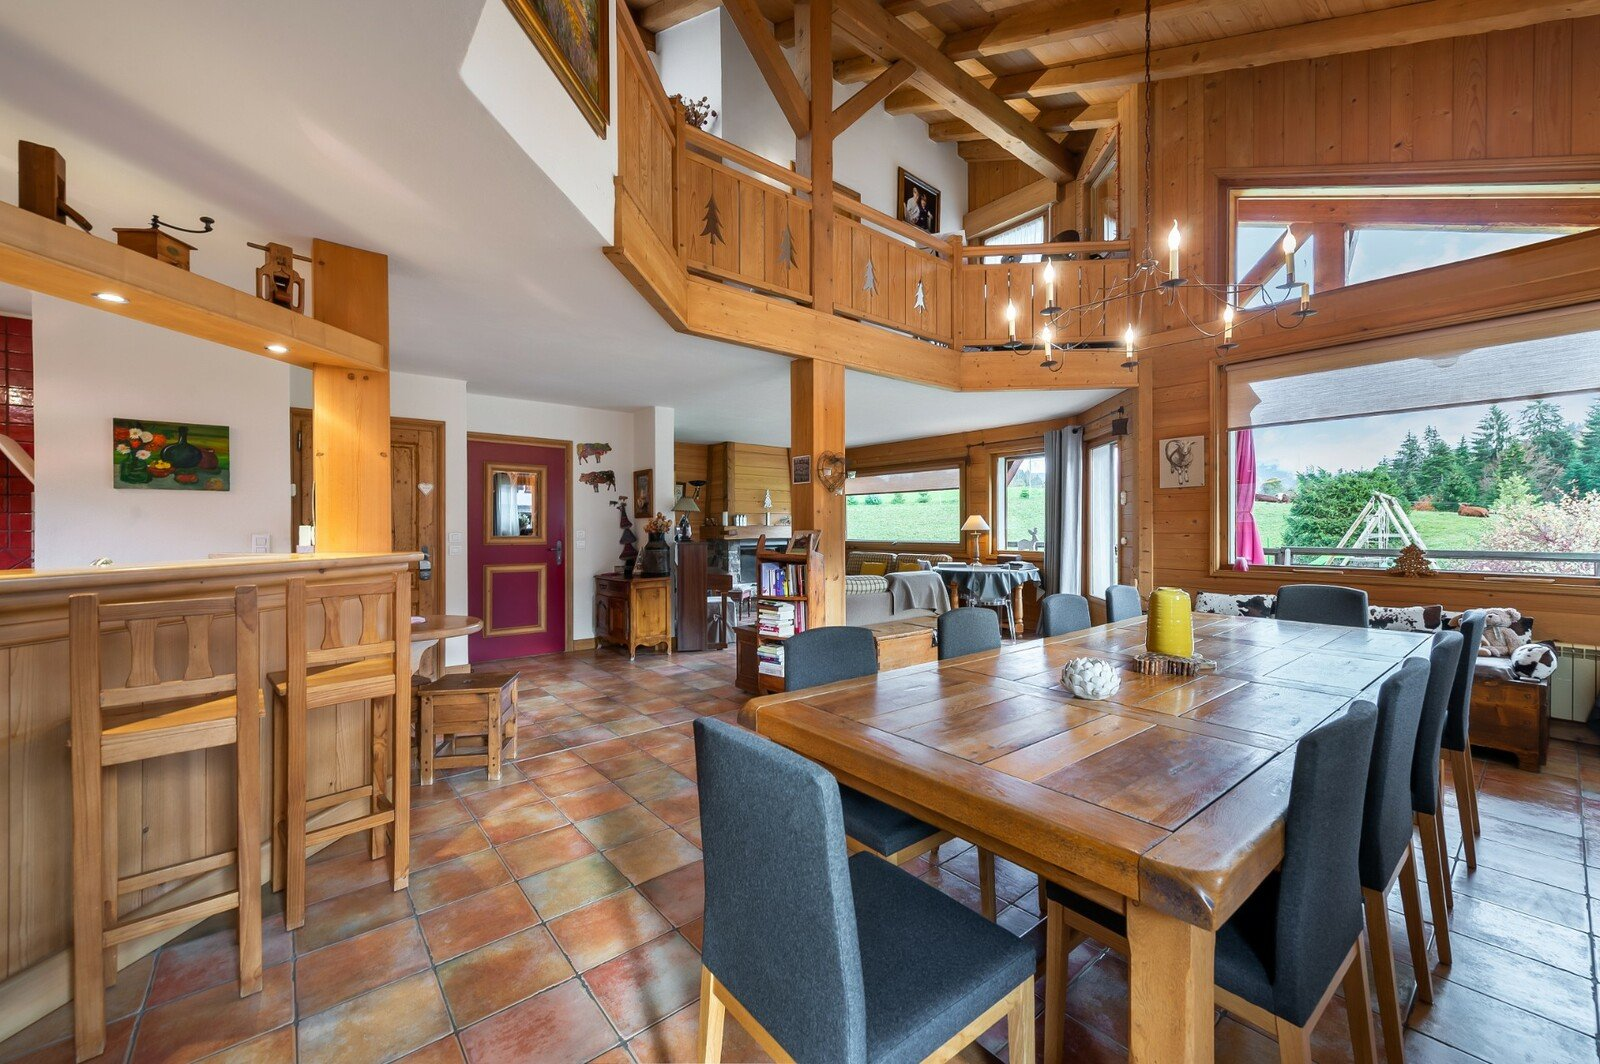 Alpine chalet in Cordon - Megeve area